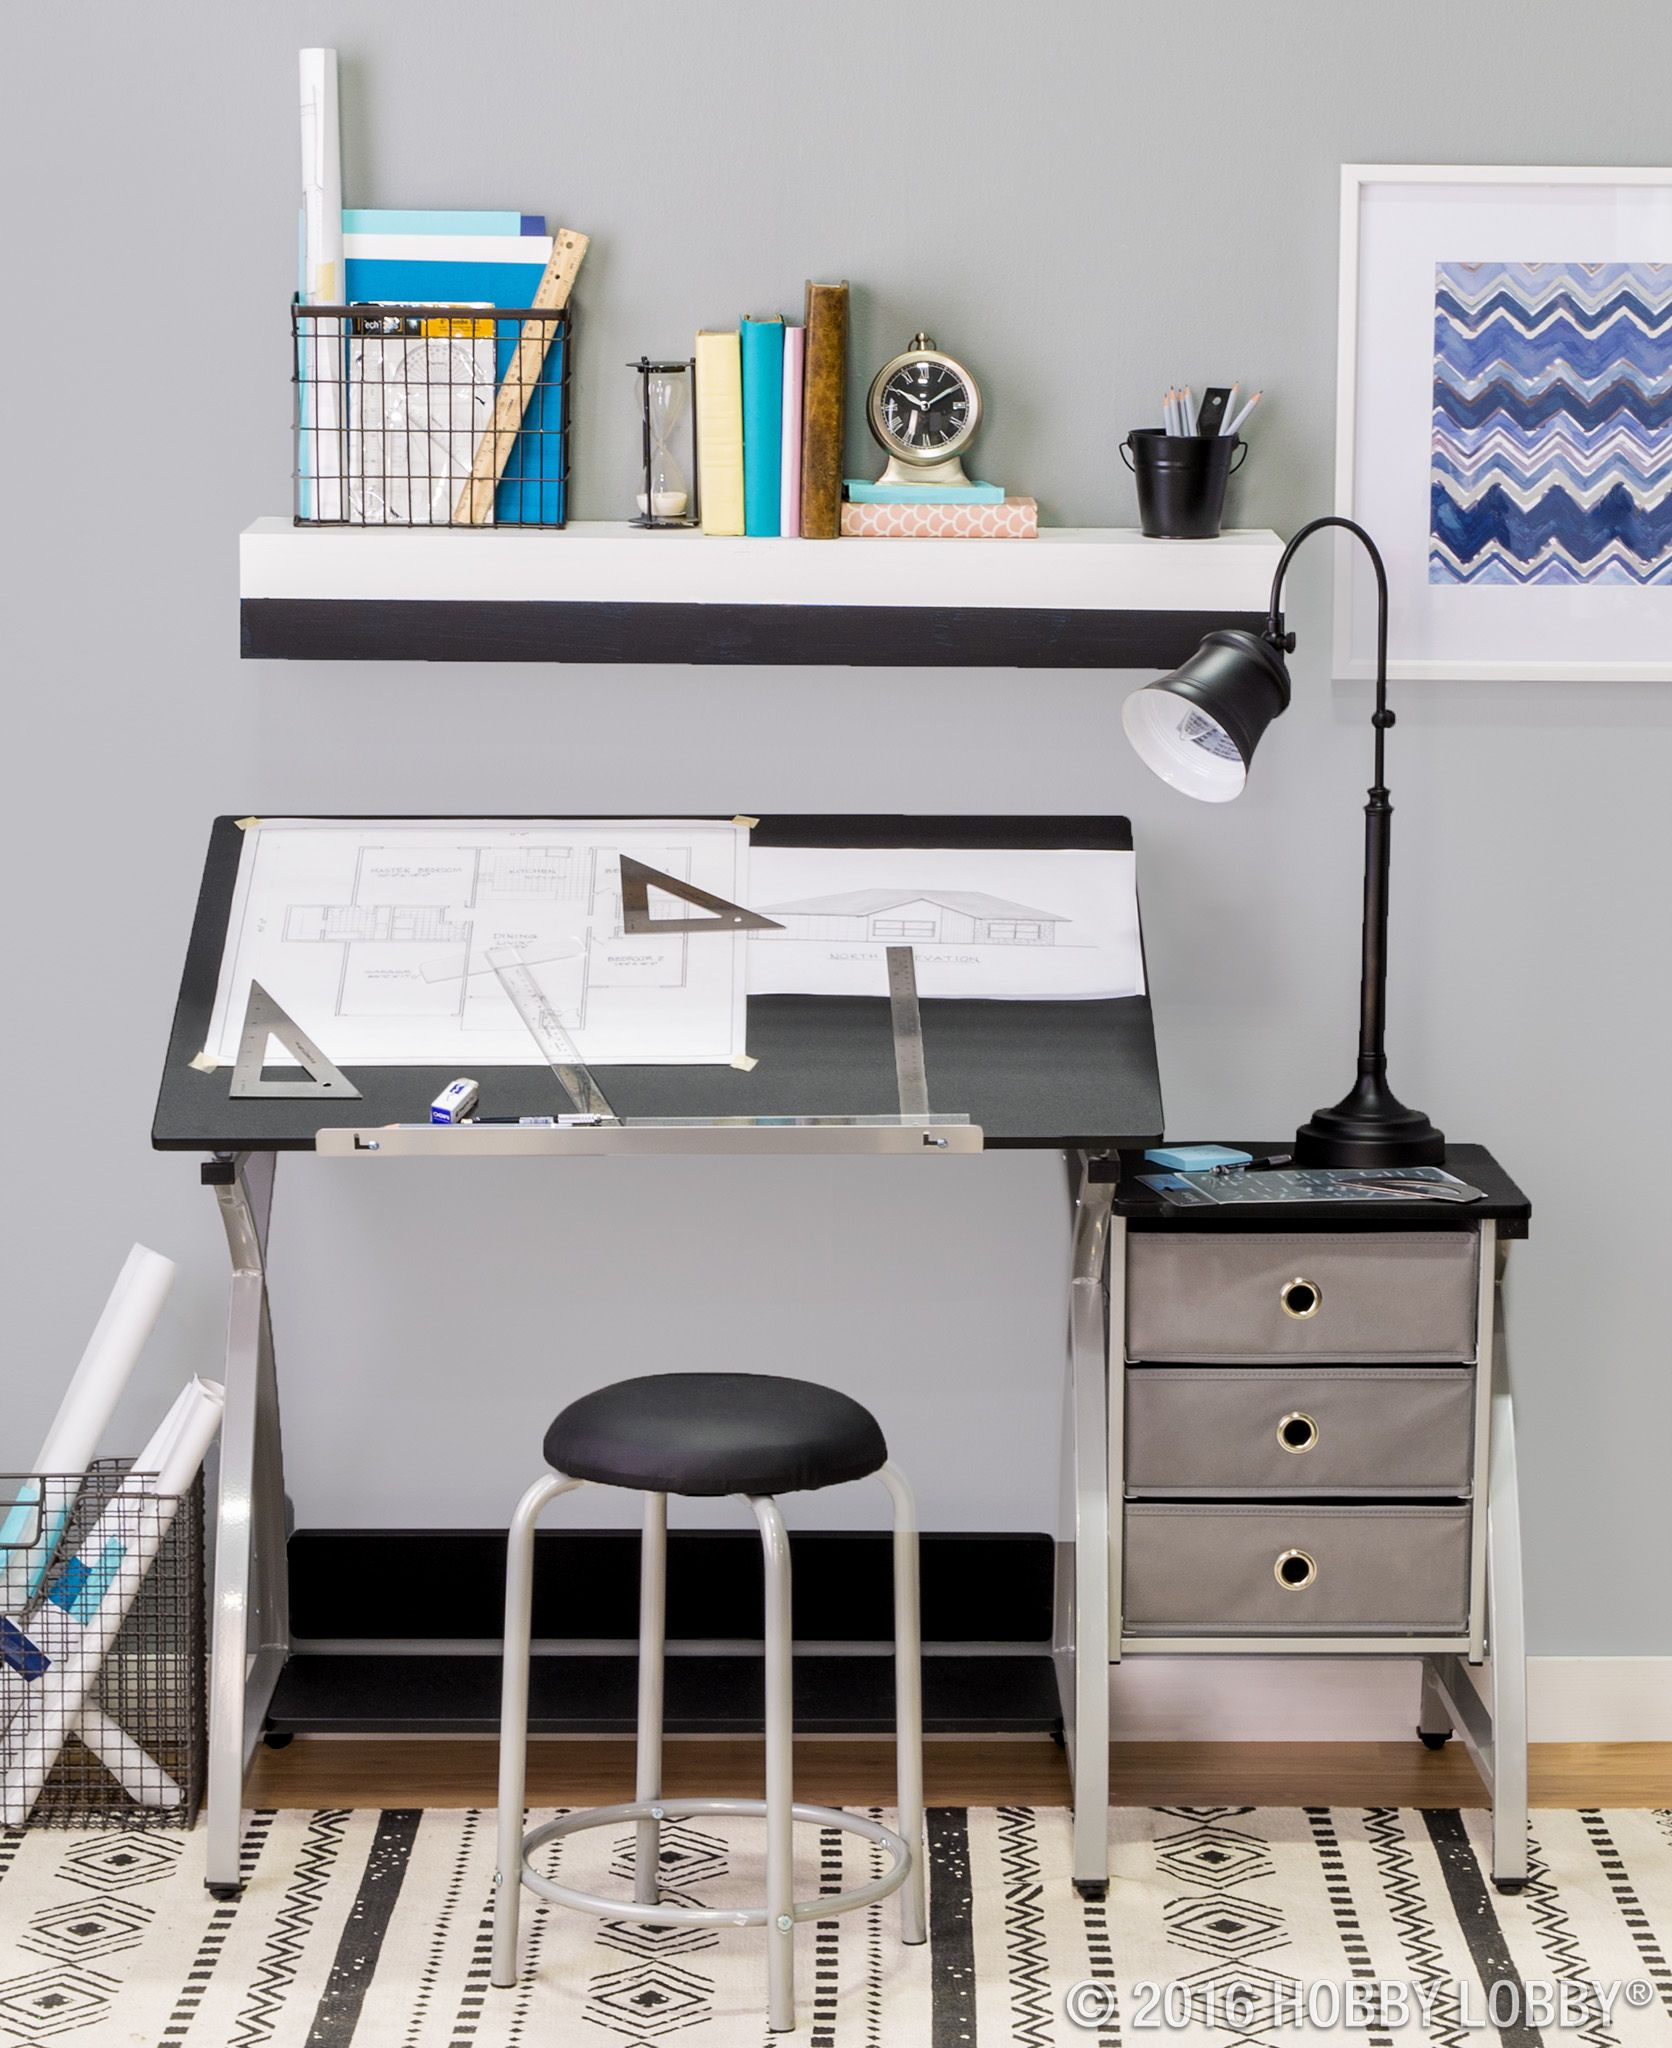 Create The Drafting Table Of Your Dreams With Plenty Of